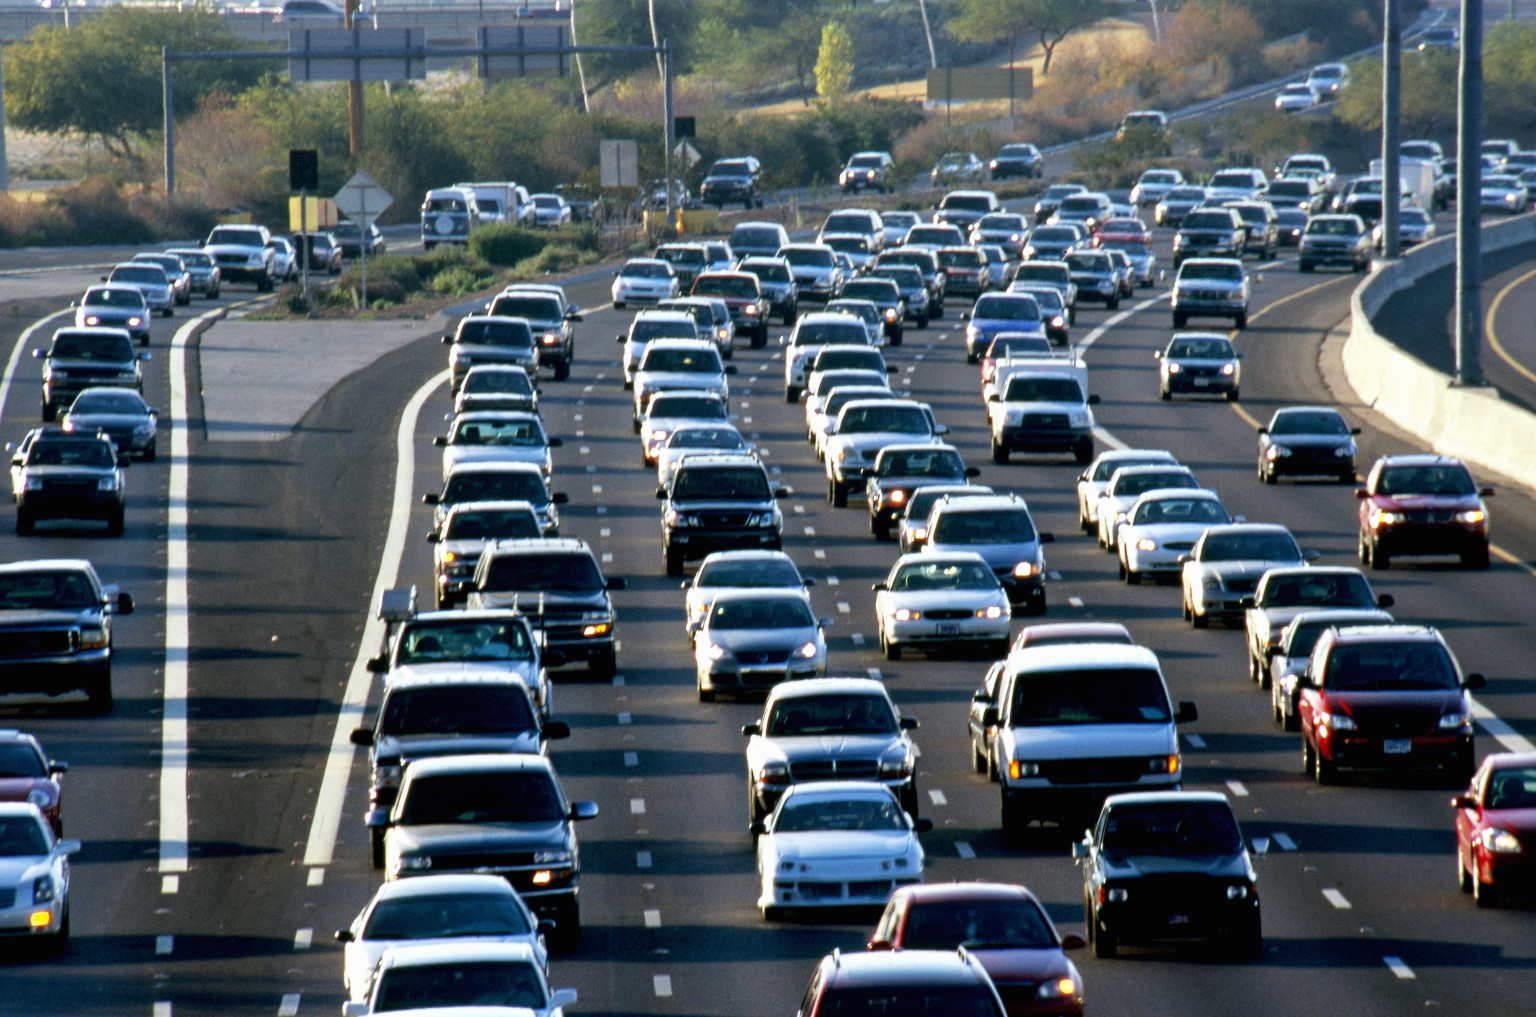 Welcome to the Exciting World of Traffic Study | HuffPost